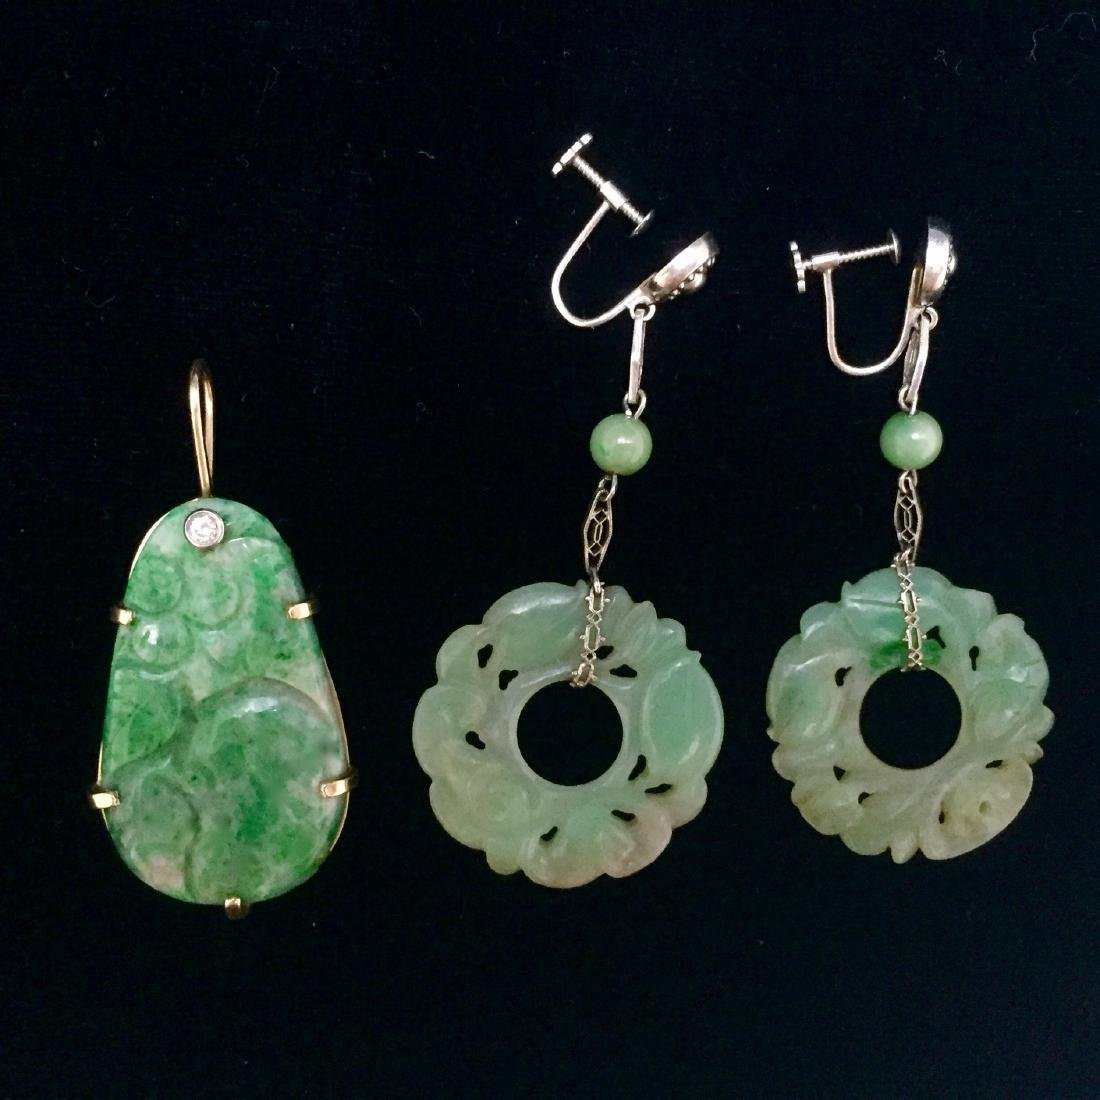 FINE 14K GOLD OLD CHINESE JADEITE PENDANT AND 14K WHITE